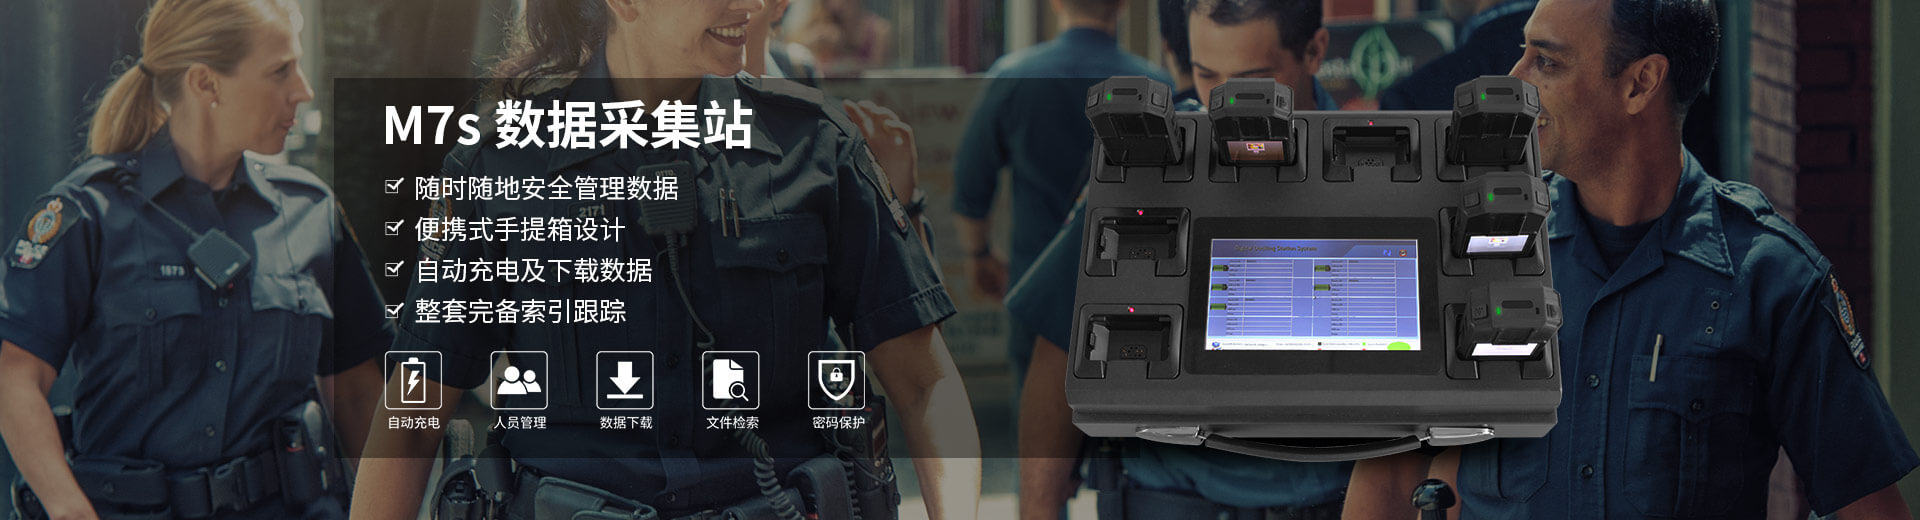 http://www.policecamera.cn/docking-station/mct-m7s-docking-station.html